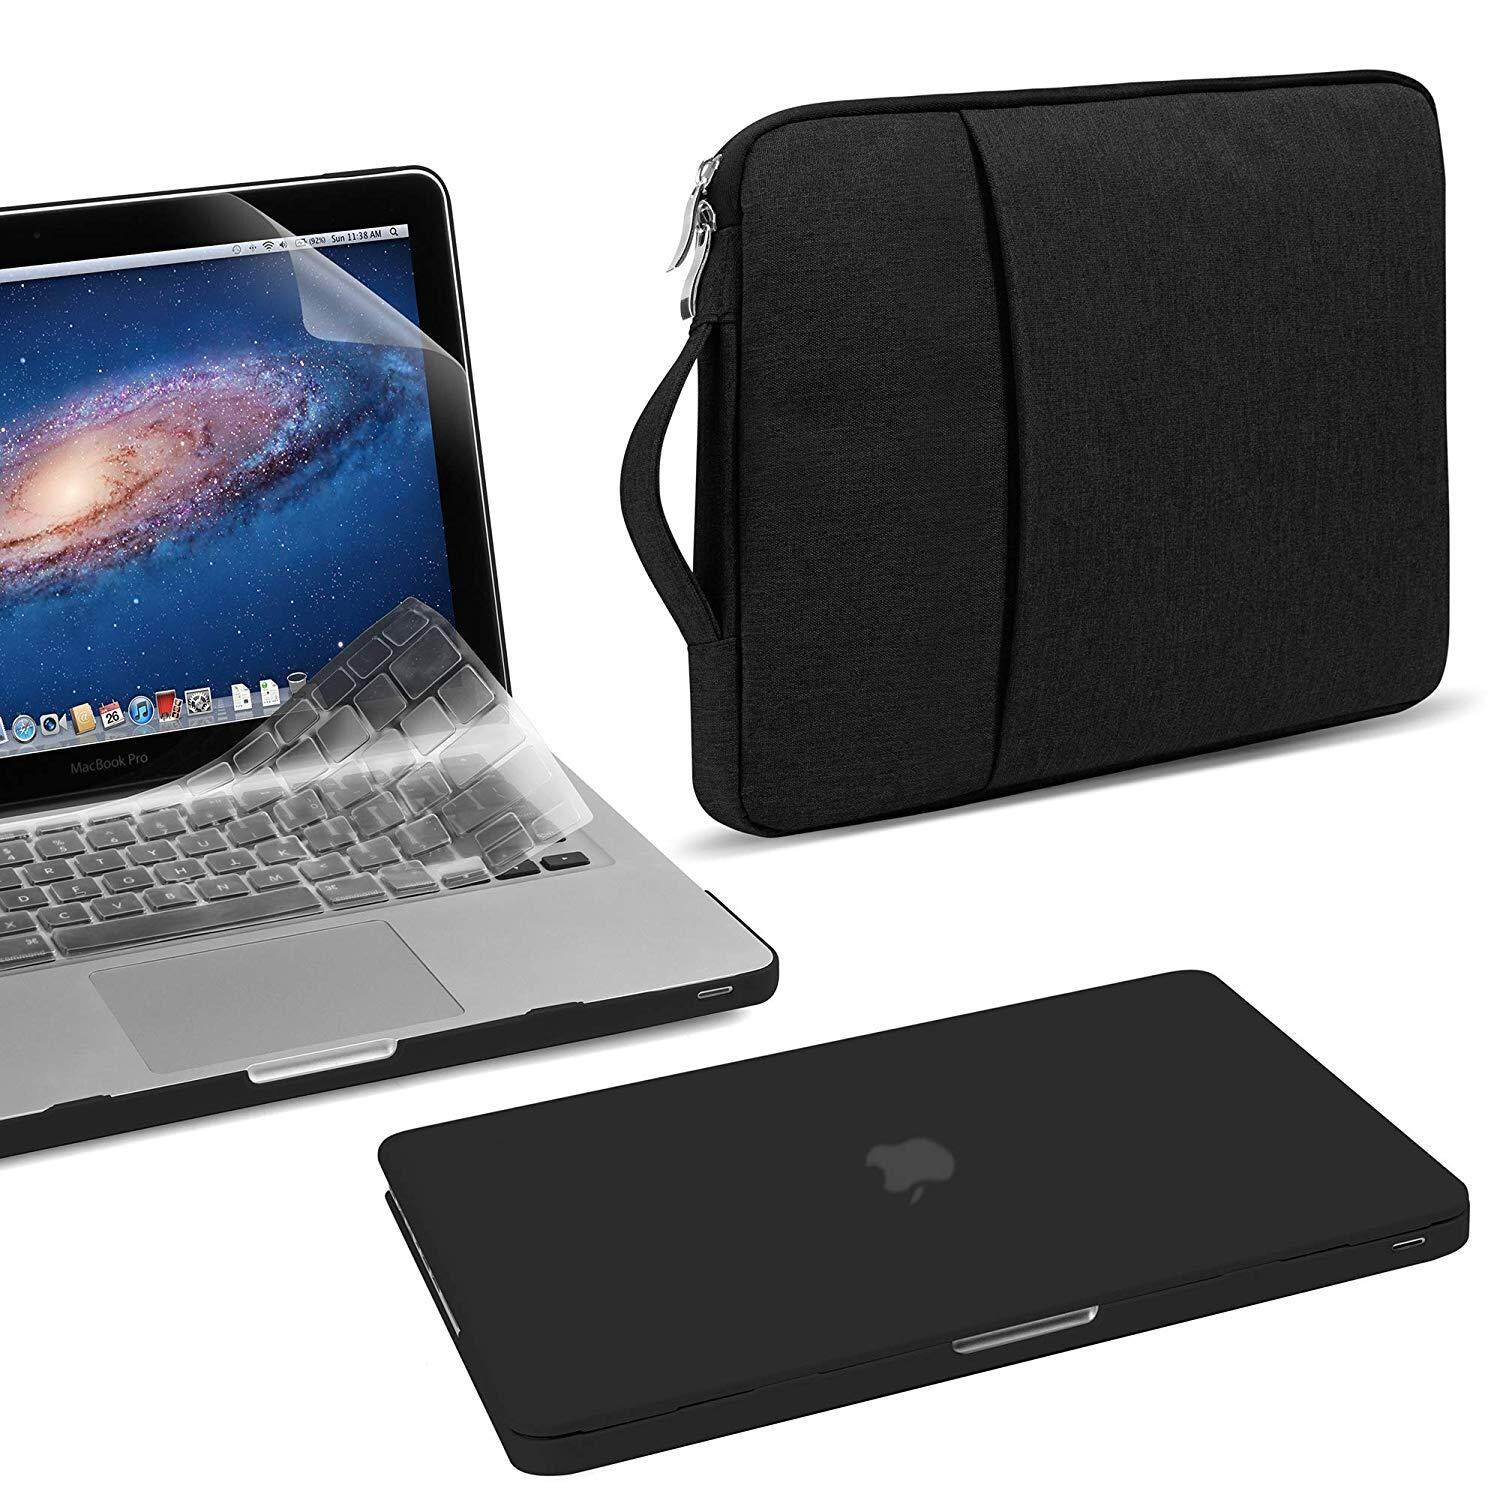 MacBook Pro 13inch  4in1 Bundle Matte Hard Plastic Case with Transparent Keyboard Cover, Clear Screen Protector & Water Repellent Laptop Sleeve for Old MacBook Pro 13 inch (A1278) Old - Black